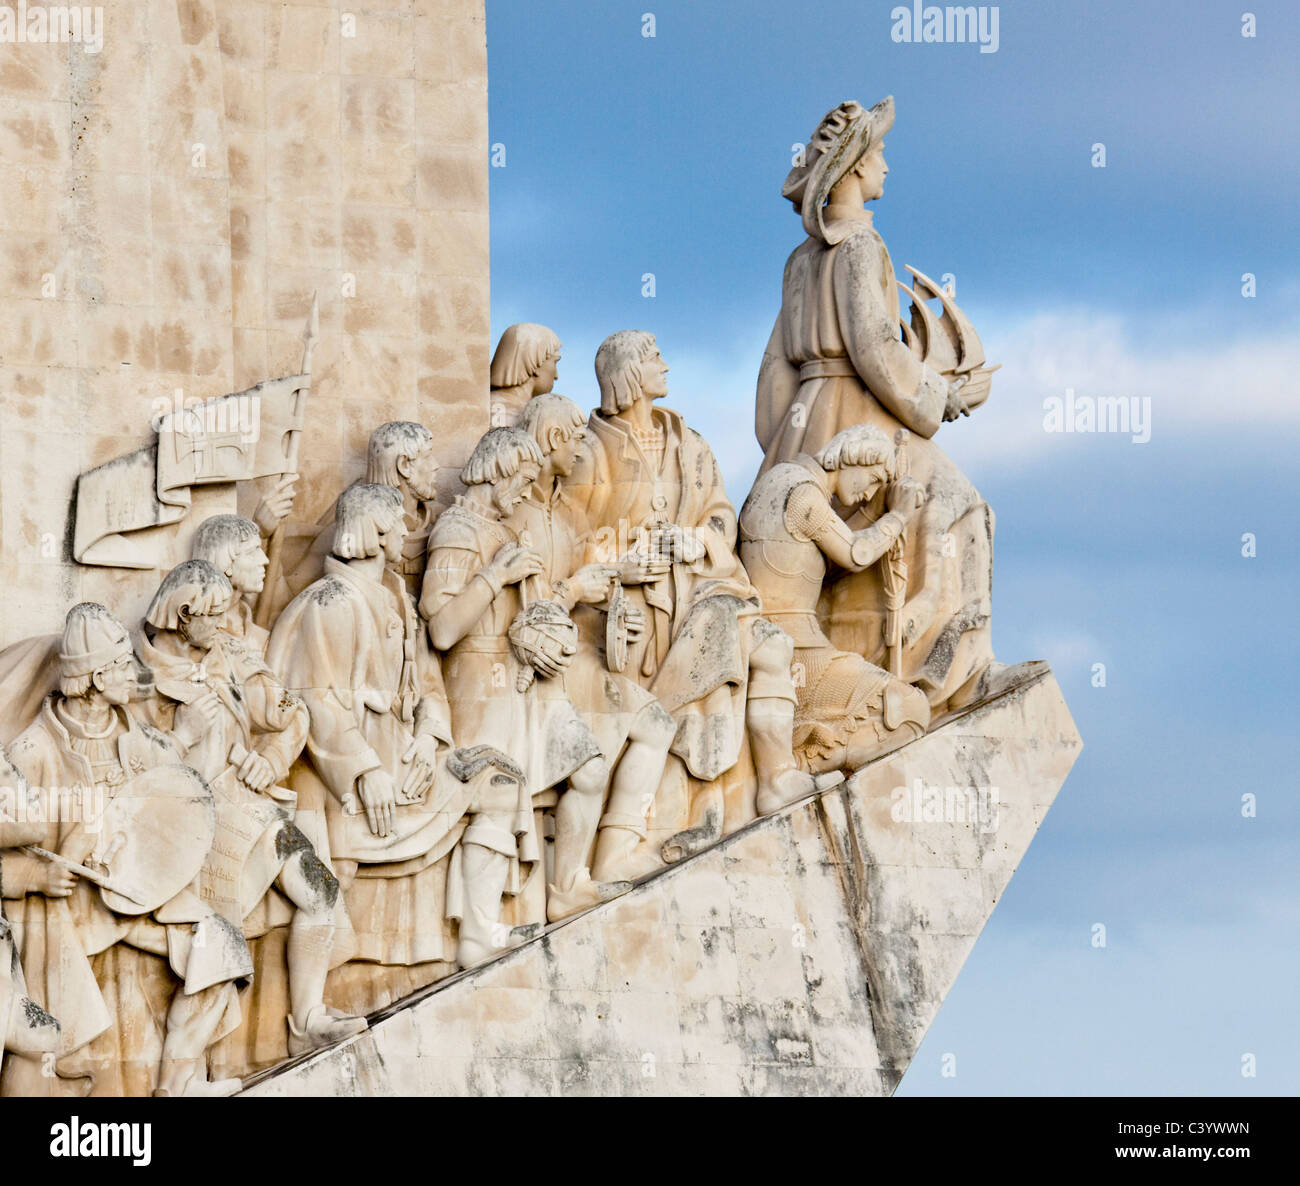 Portugal, Europe, Lisbon, discoverer monument, detail, art, skill, plastic - Stock Image